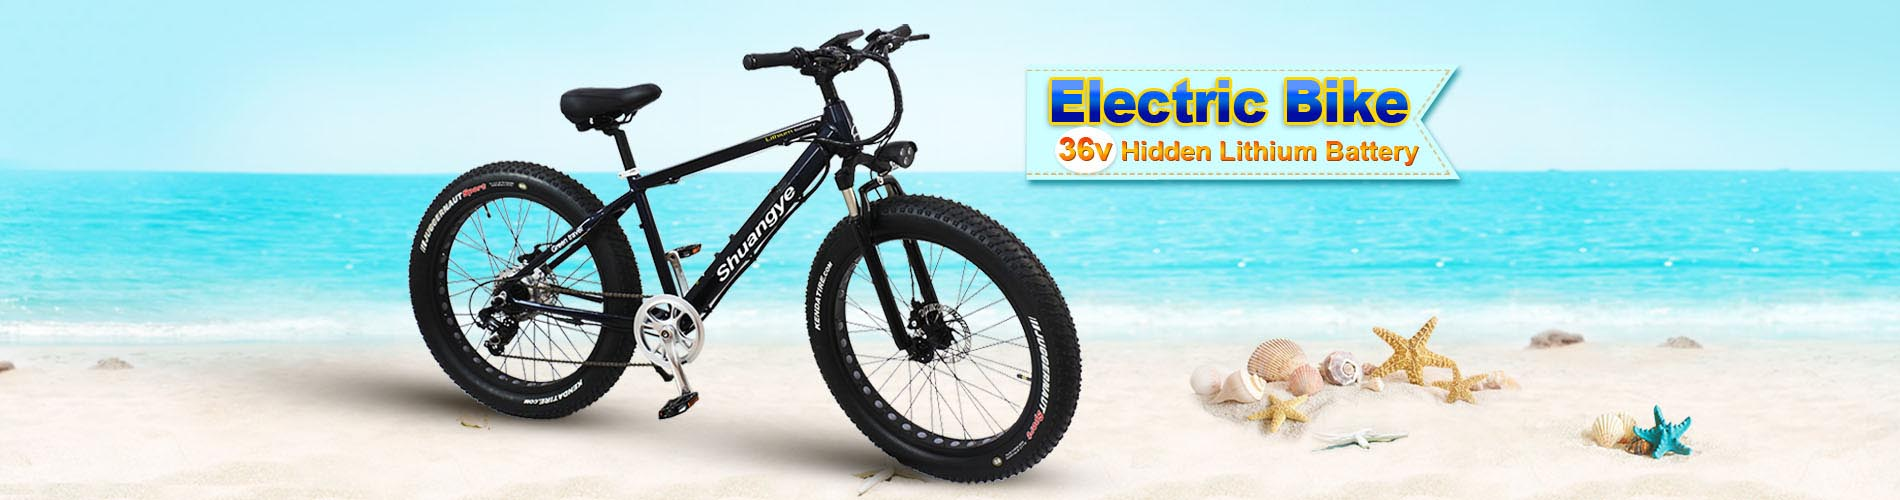 How to choose motorized bike for sale buying guide